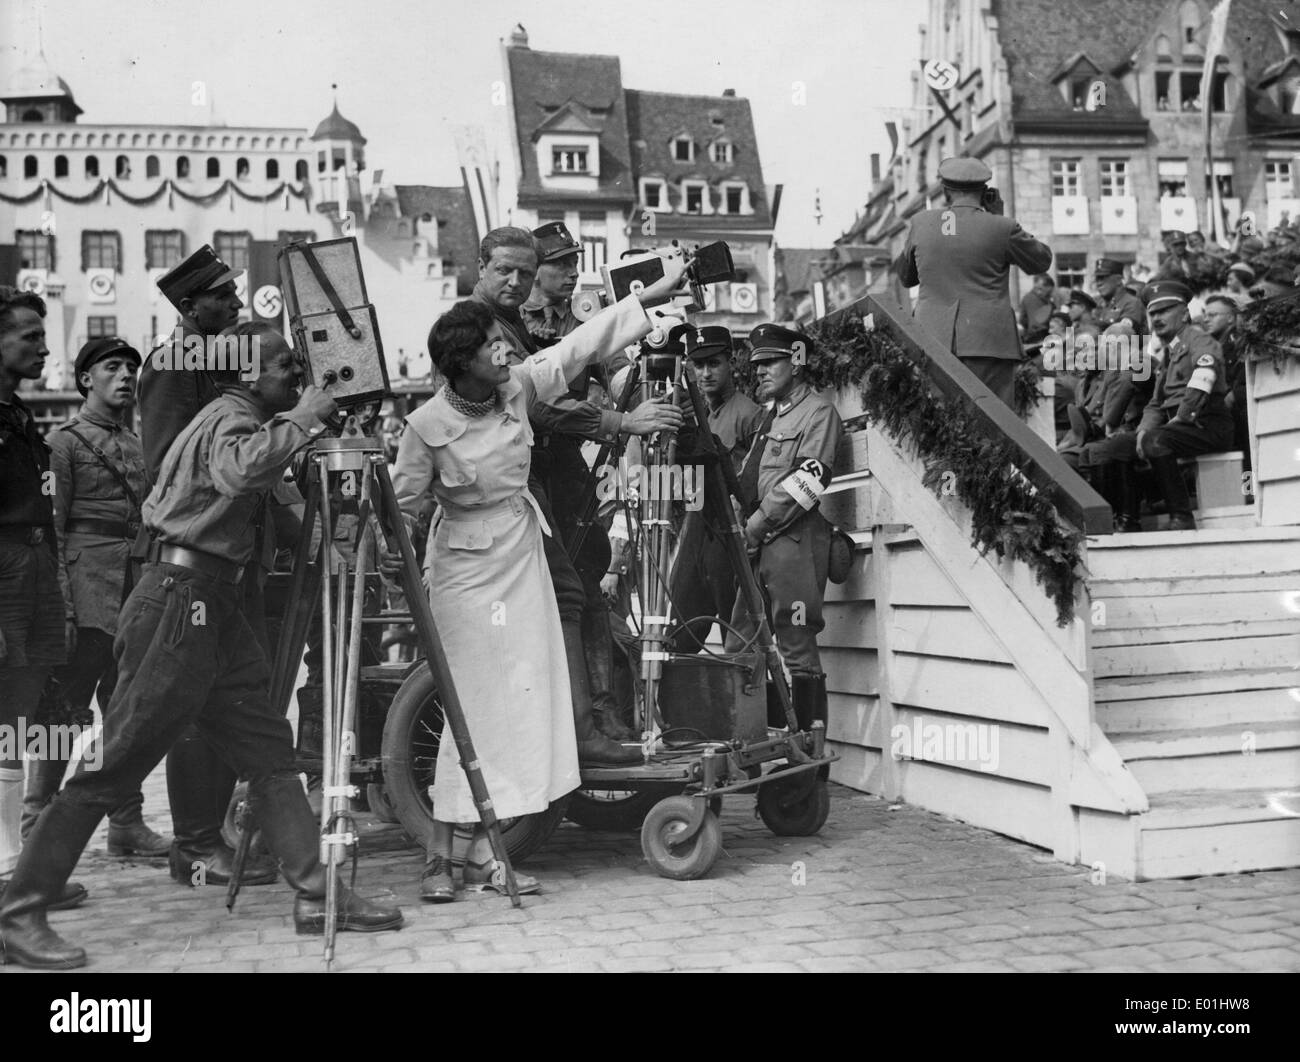 a report on triumph of the will by leni riefenstahl She quickly wrote a letter to the nazi paper völkischer beobachter, in which she  requested a  leni riefenstahl directing a scene from the triumph of the will.